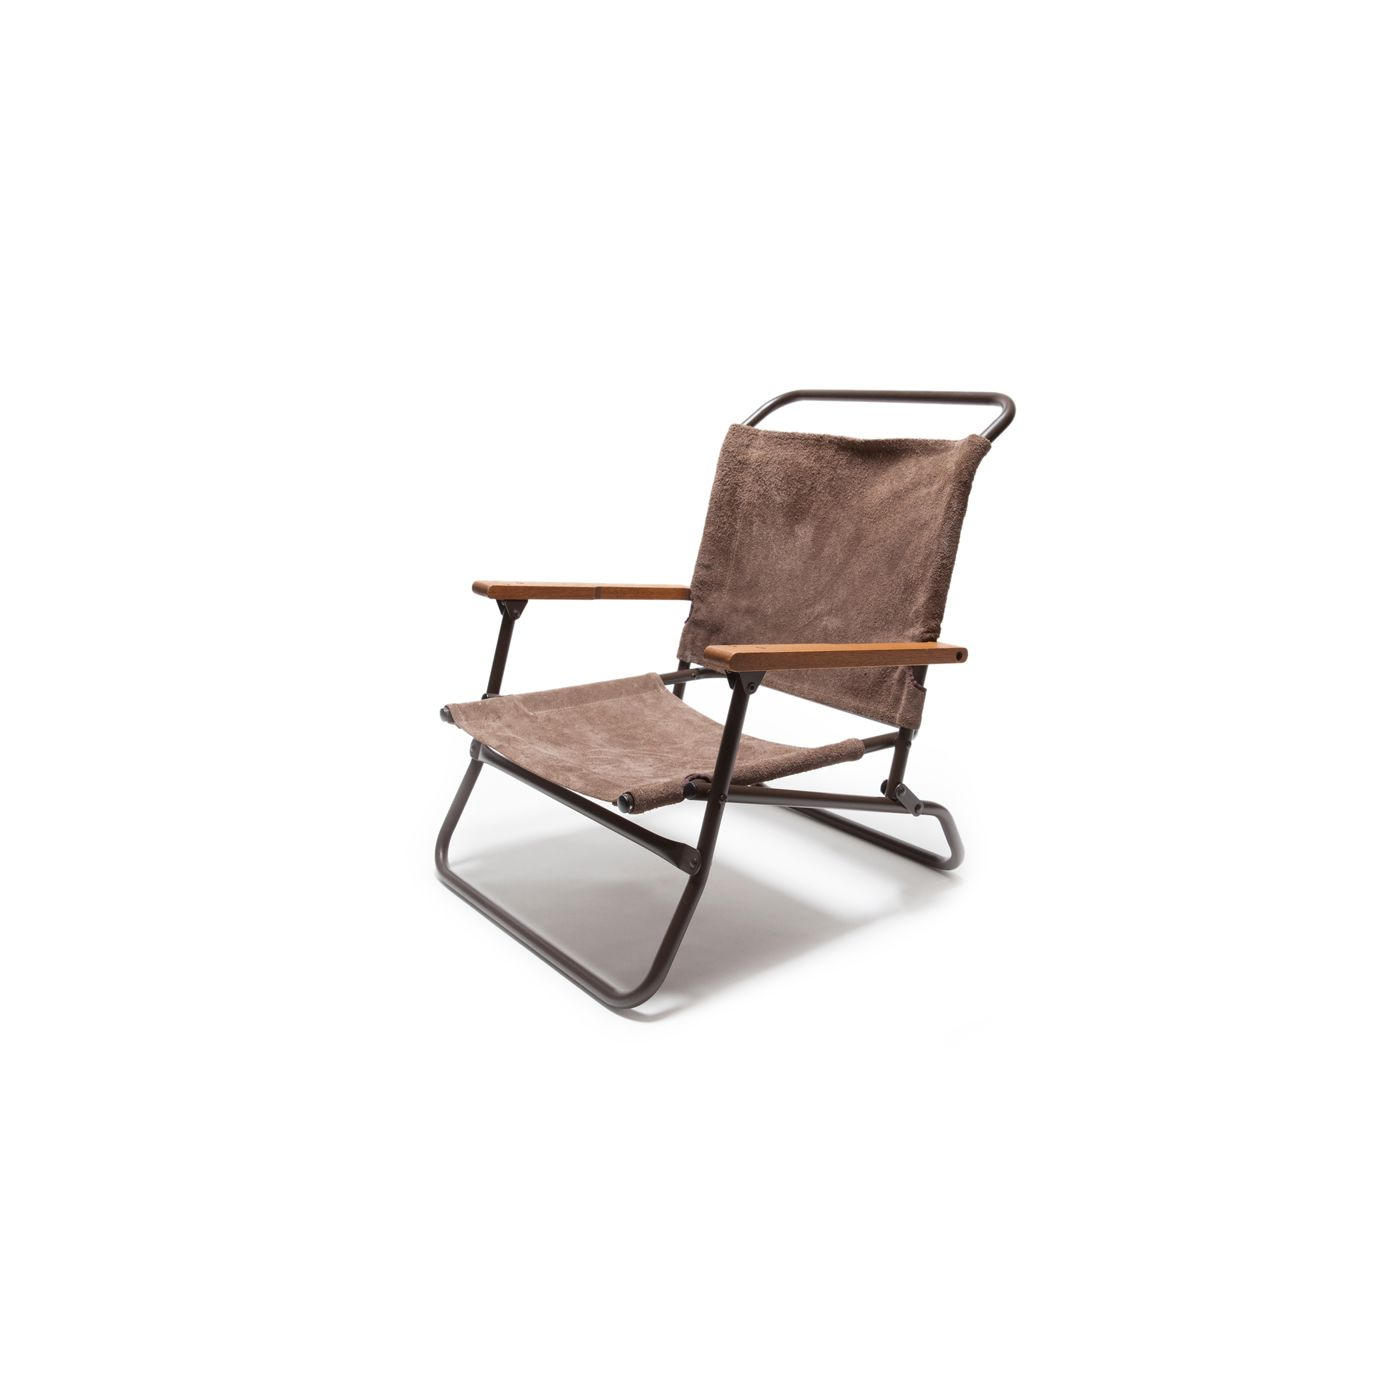 Hb 02353 Hobo Leather Low Camp Chair Props Camping